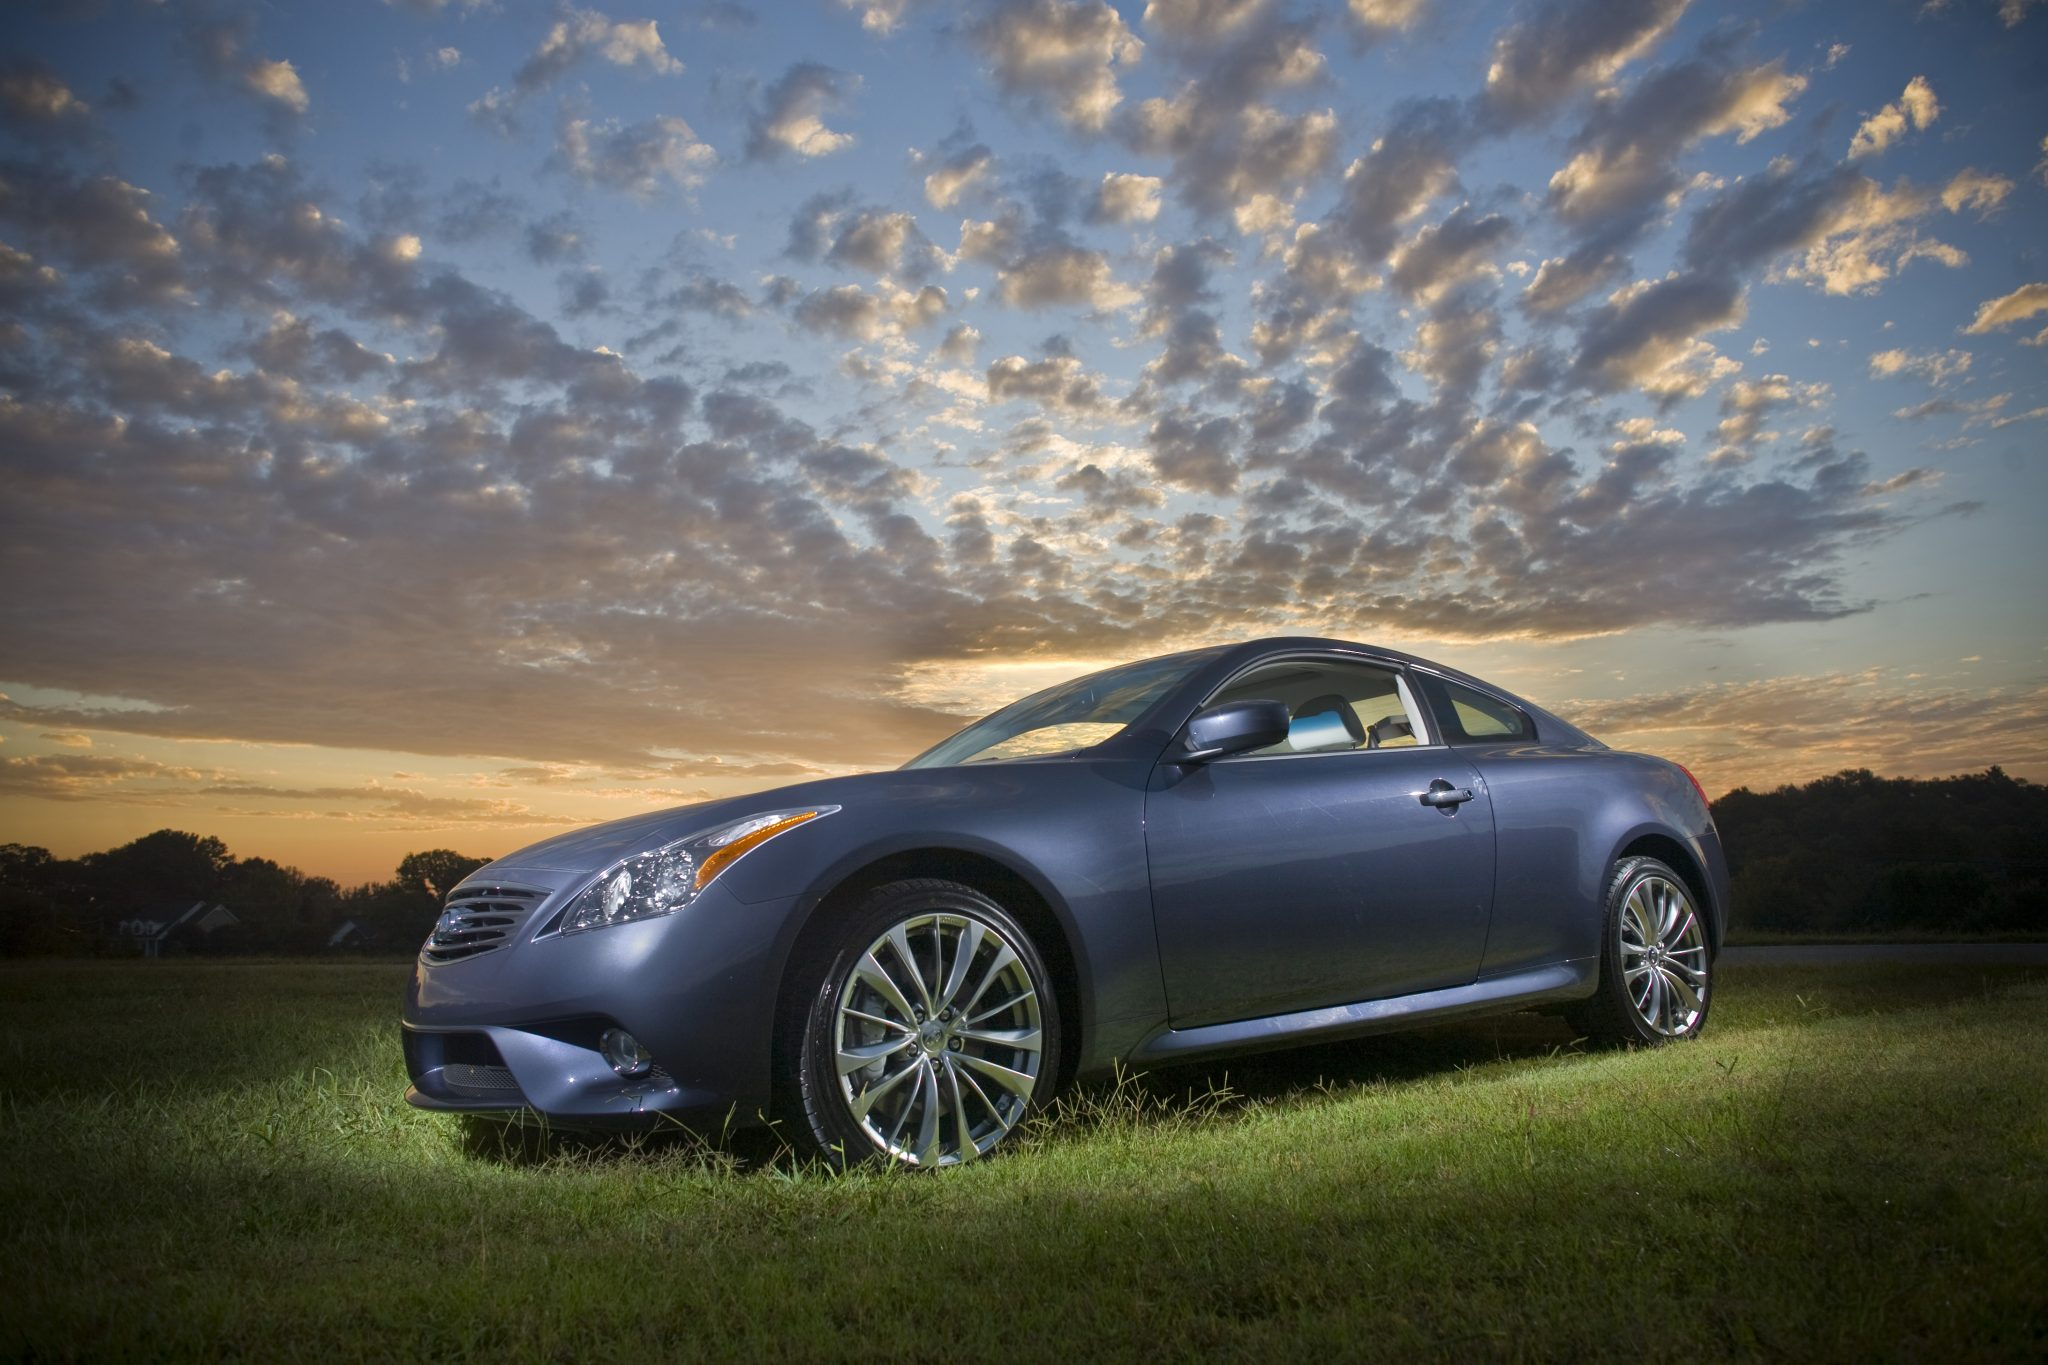 The 2013 Infiniti G37 Coupe overview